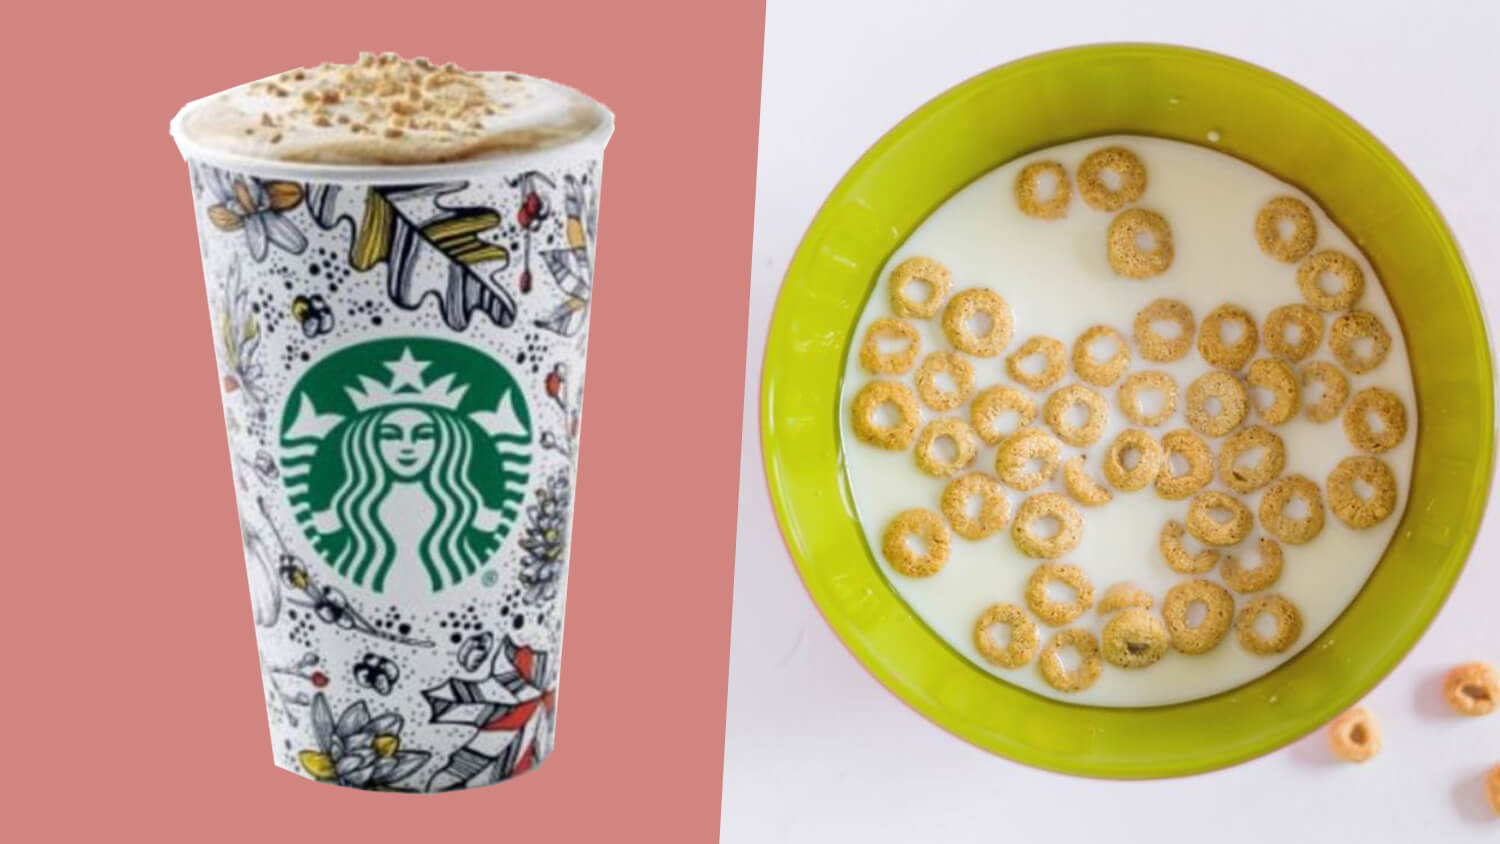 Vegan Cereal Lattes With Dairy-Free Oat Milk Launch At Starbucks Europe